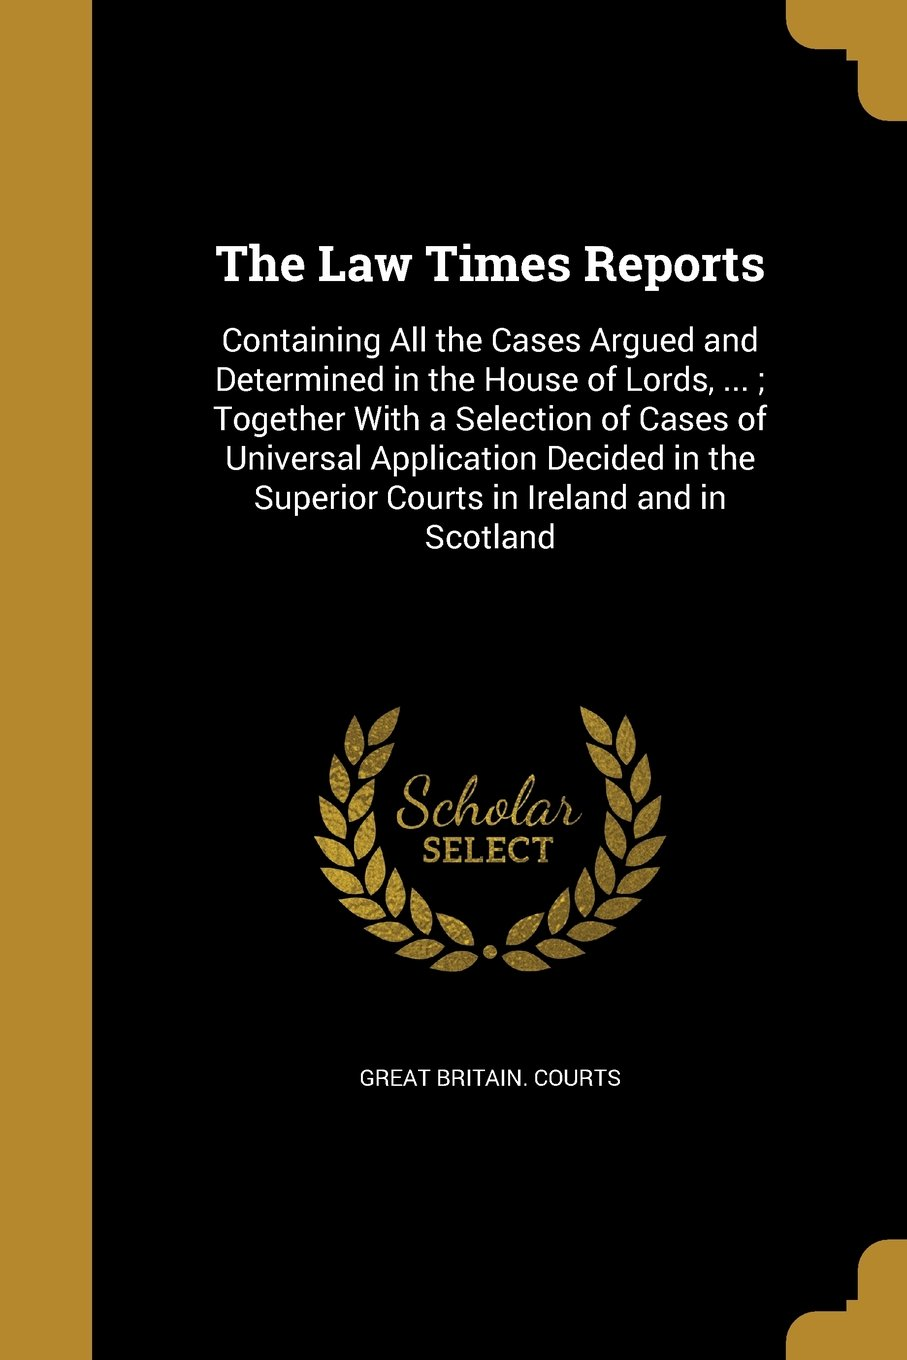 The Law Times Reports: Containing All the Cases Argued and Determined in the House of Lords, ...; Together with a Selection of Cases of Universal ... Superior Courts in Ireland and in Scotland PDF